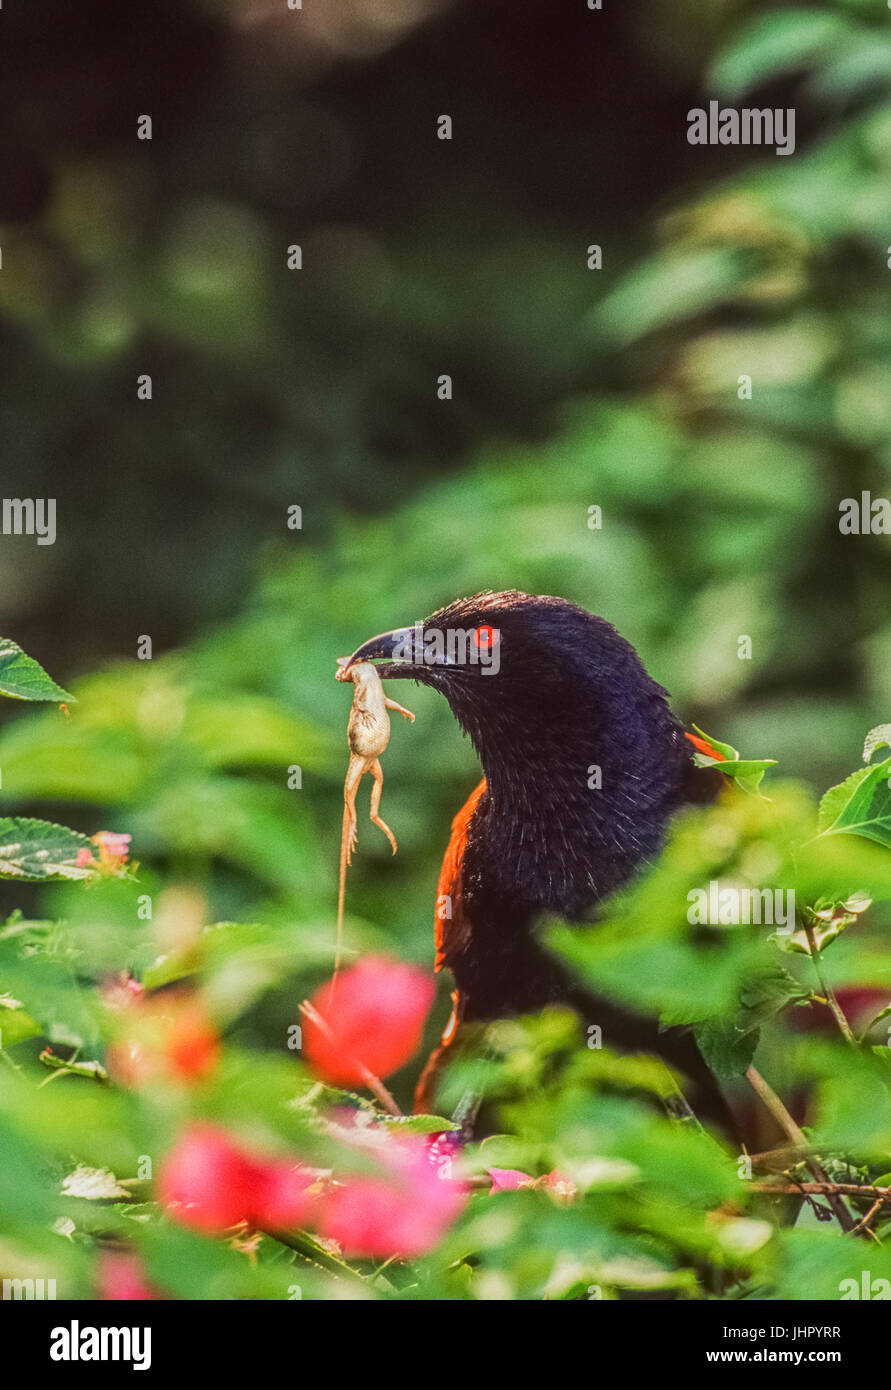 Greater Coucal, (Centropus sinenesis), with lizard prey, Keoladeo Ghana National Park, Bharatpur, Rajasthan, India - Stock Image